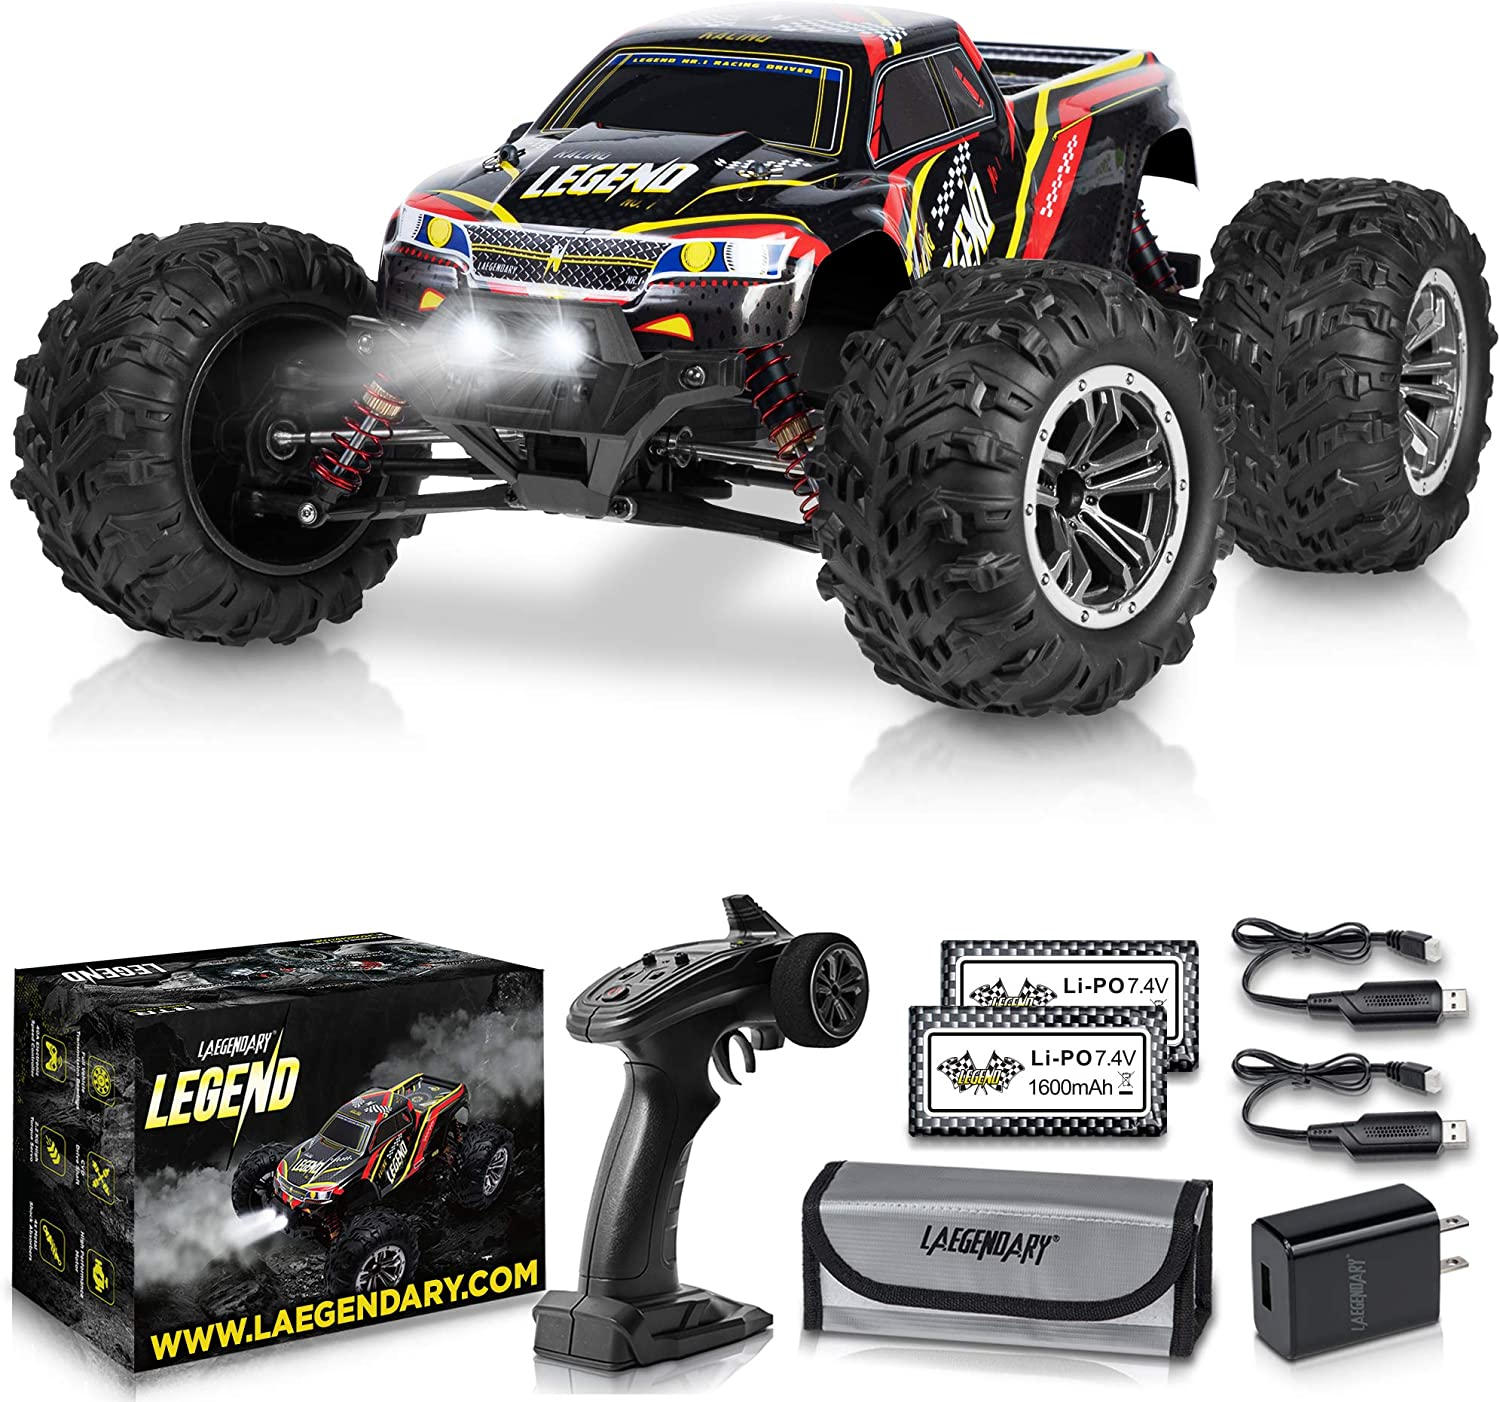 Amazon.com: 1:10 Scale Large RC Cars 48+ kmh Speed - Boys Remote Control  Car 4x4 Off Road Monster Truck Electric - All Terrain Waterproof Toys  Trucks for Kids and Adults - 2